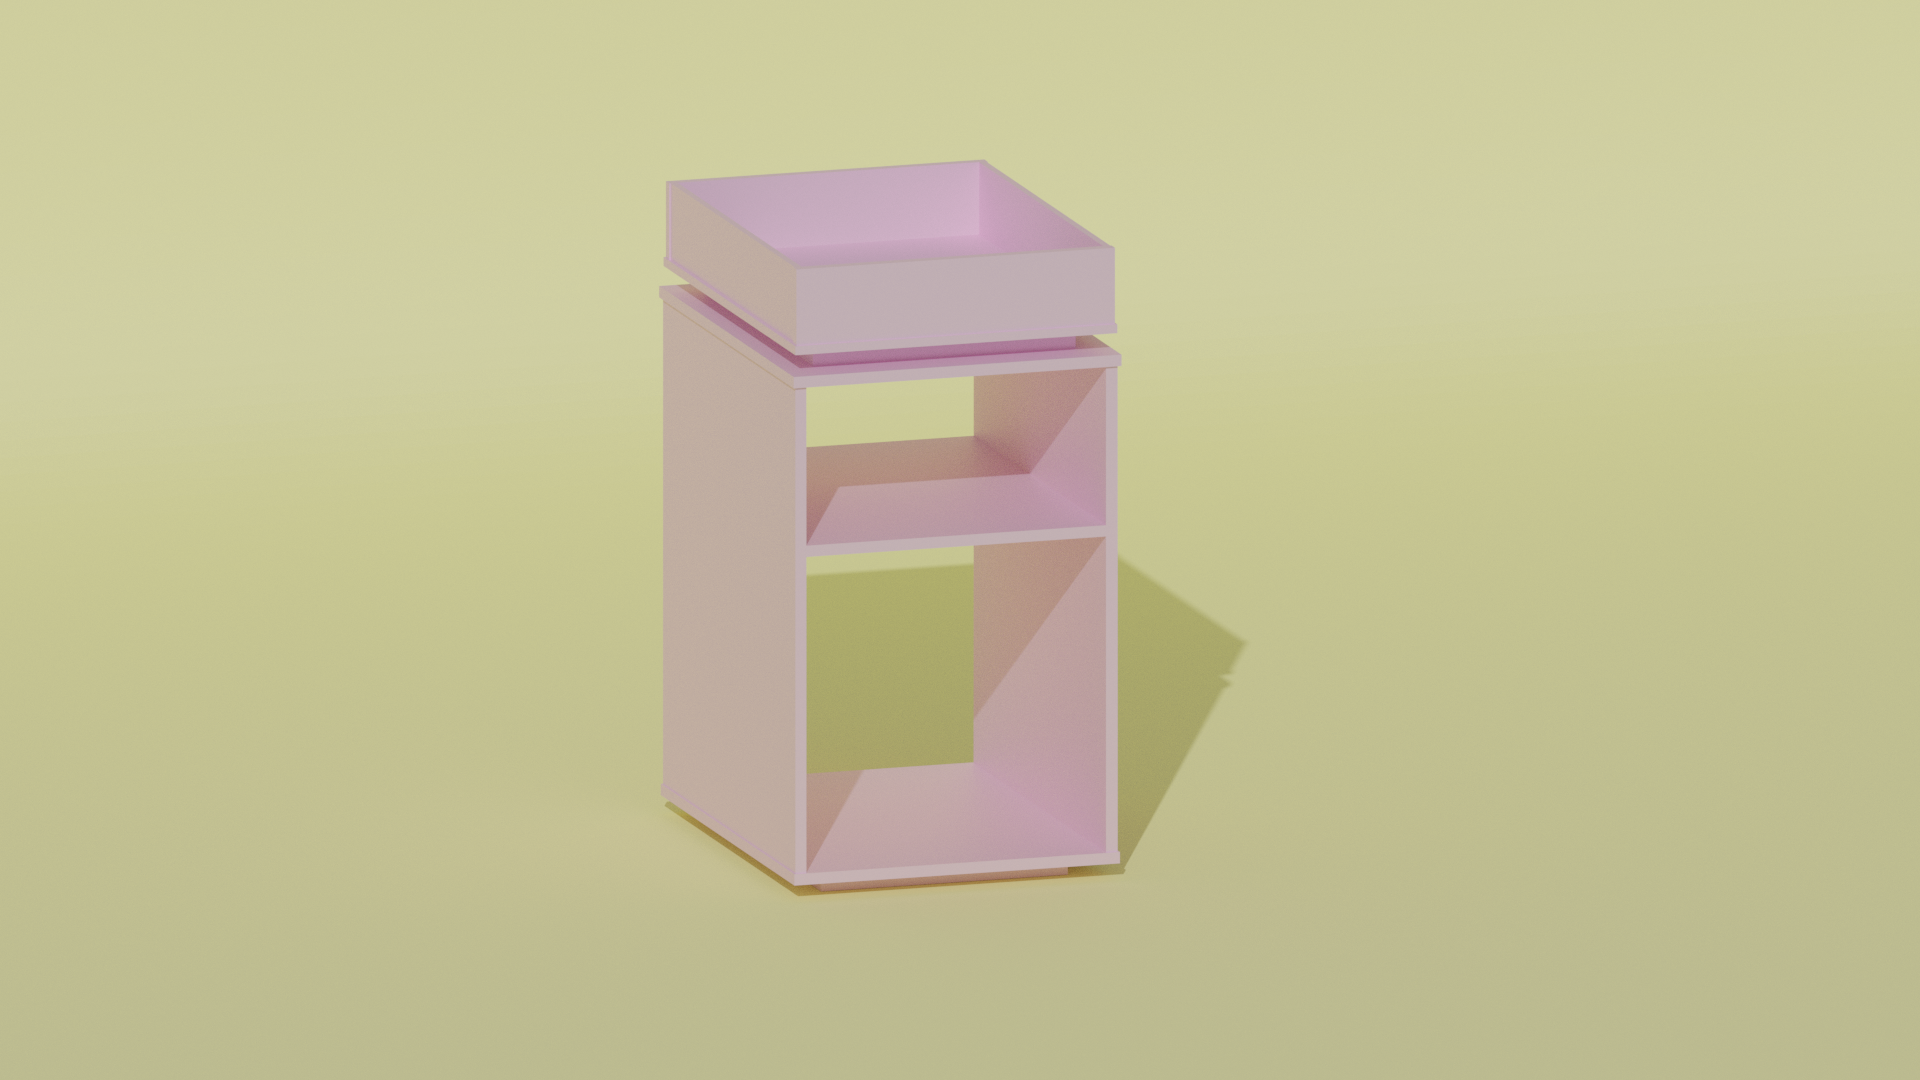 Simple Modern Bedside Table  preview image 1